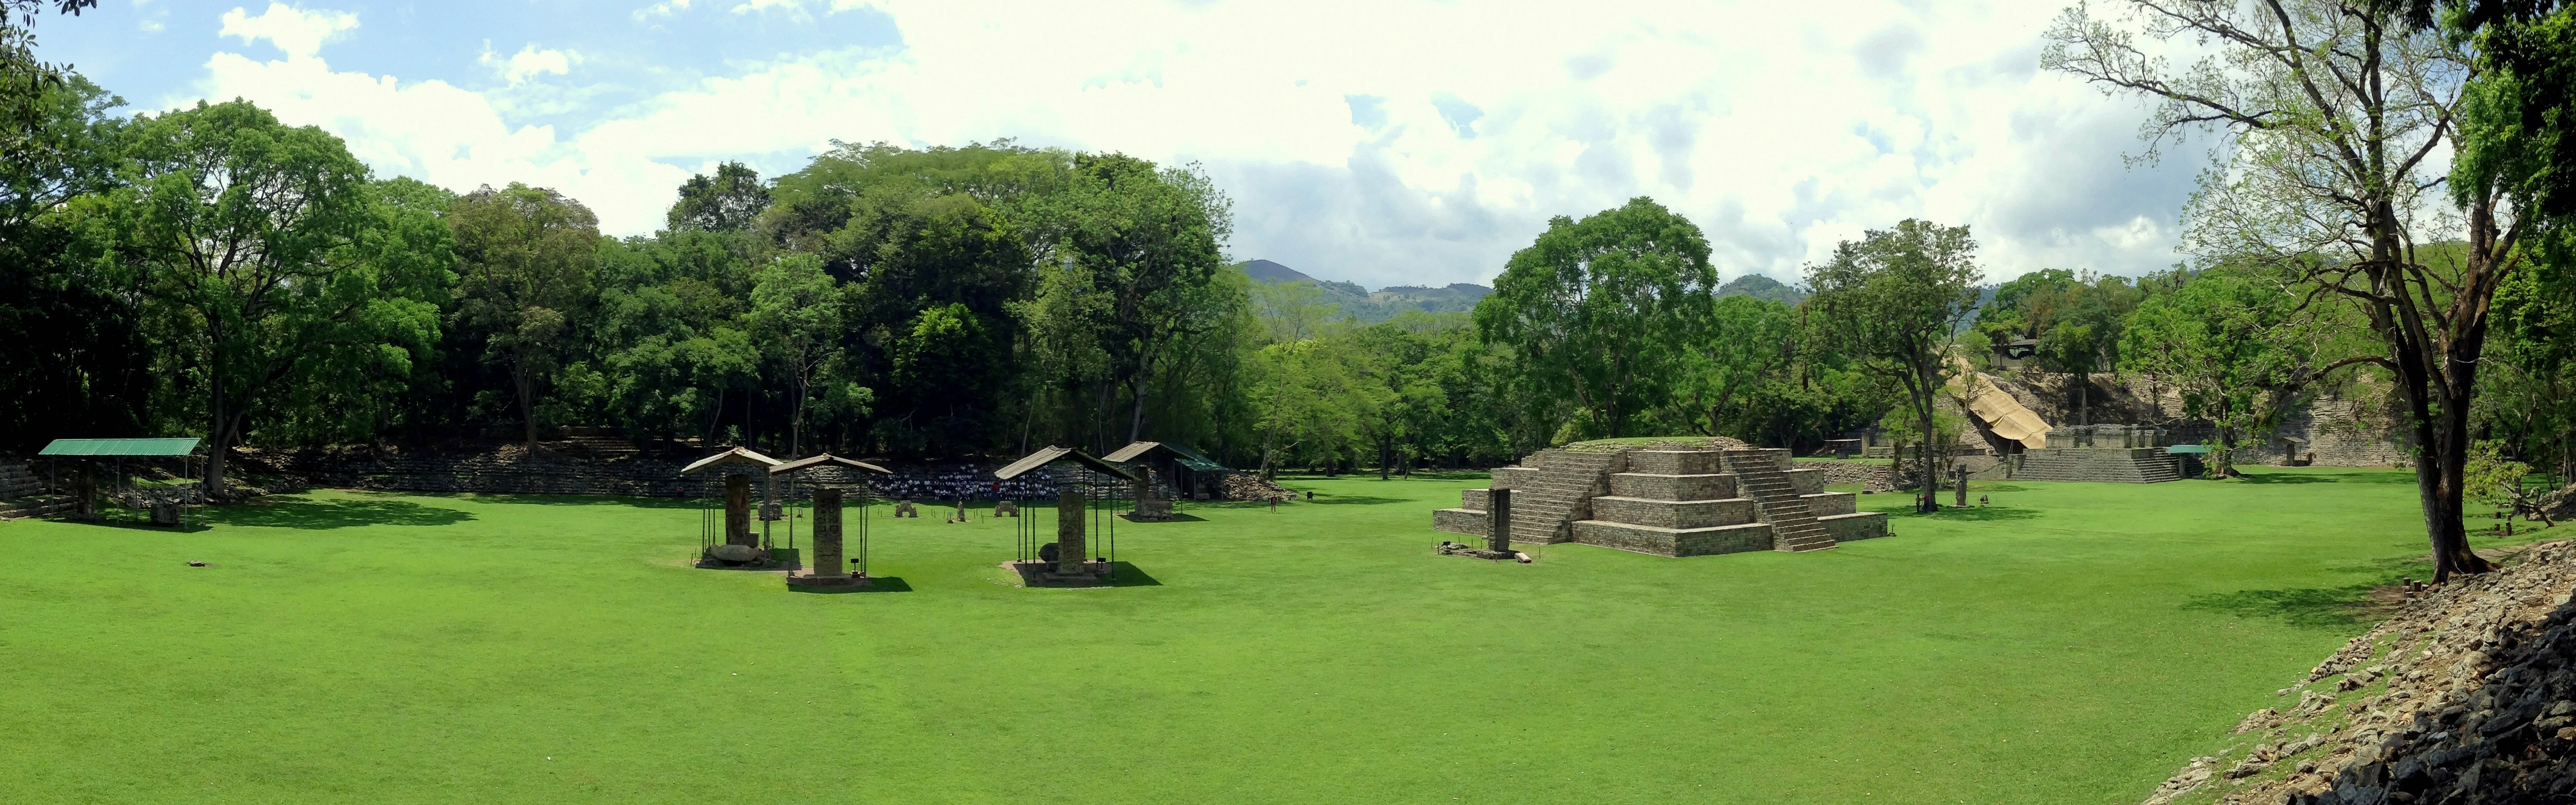 A panorama of the Great Plaza of the Copan Architectural Site, western Honduras. June 7th 2013 (iPod)